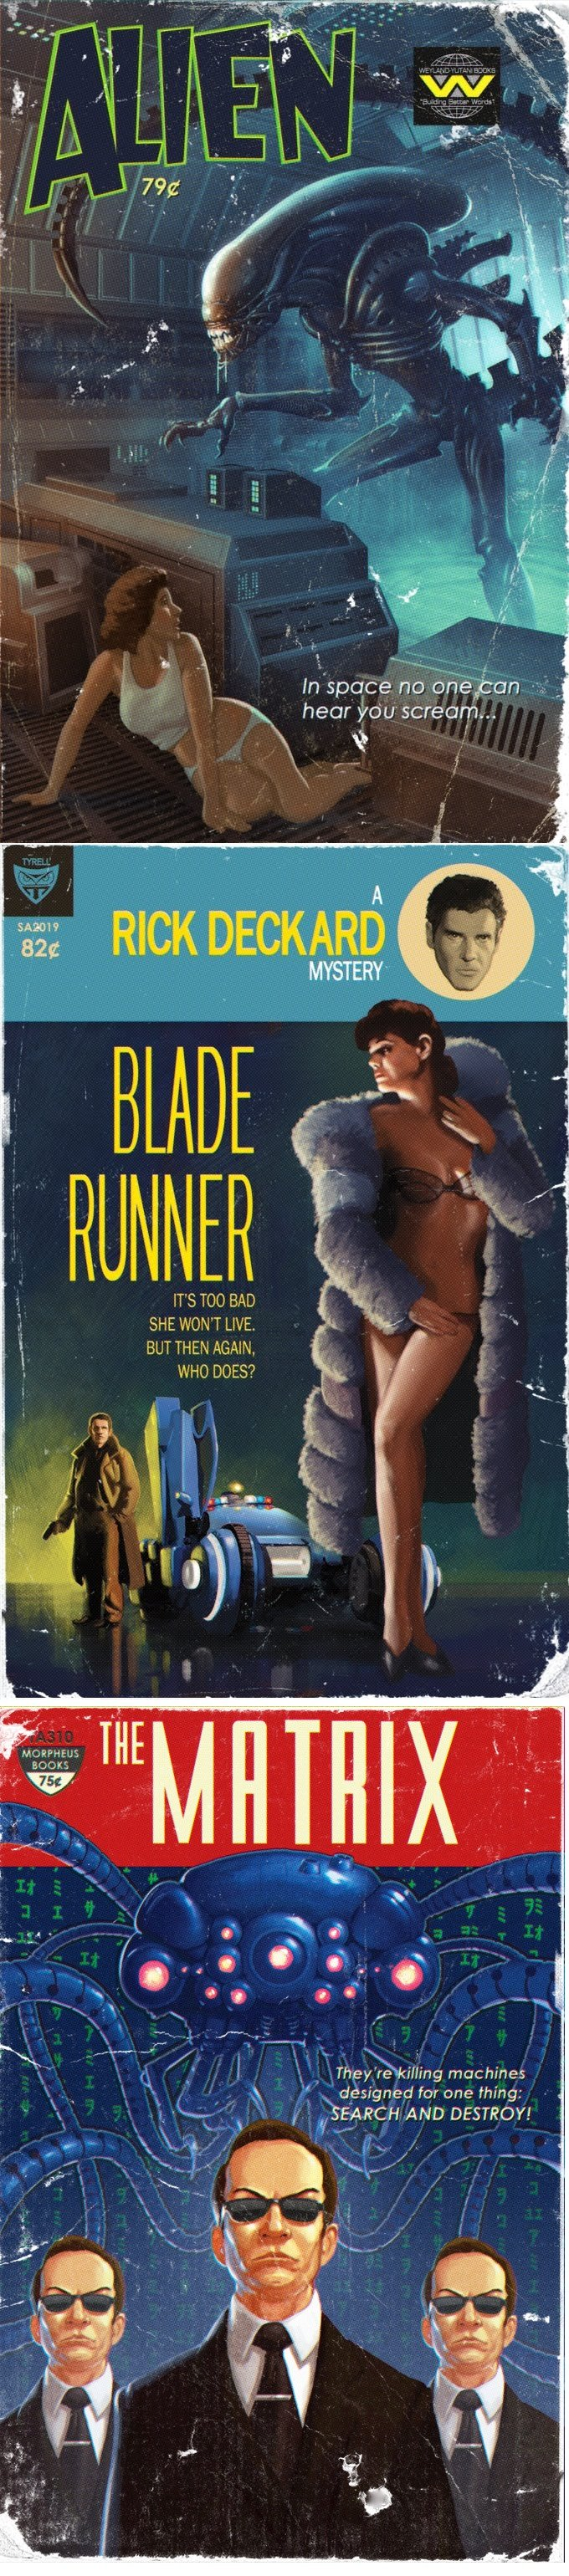 Pretty cool eh?. Classic sci-fi films reimagined as pulp novels. hear you scream... TS TOO BAD SHE WONT LIVE BUT THEN AGAIN, WHO DOES? UNN g machines V designed